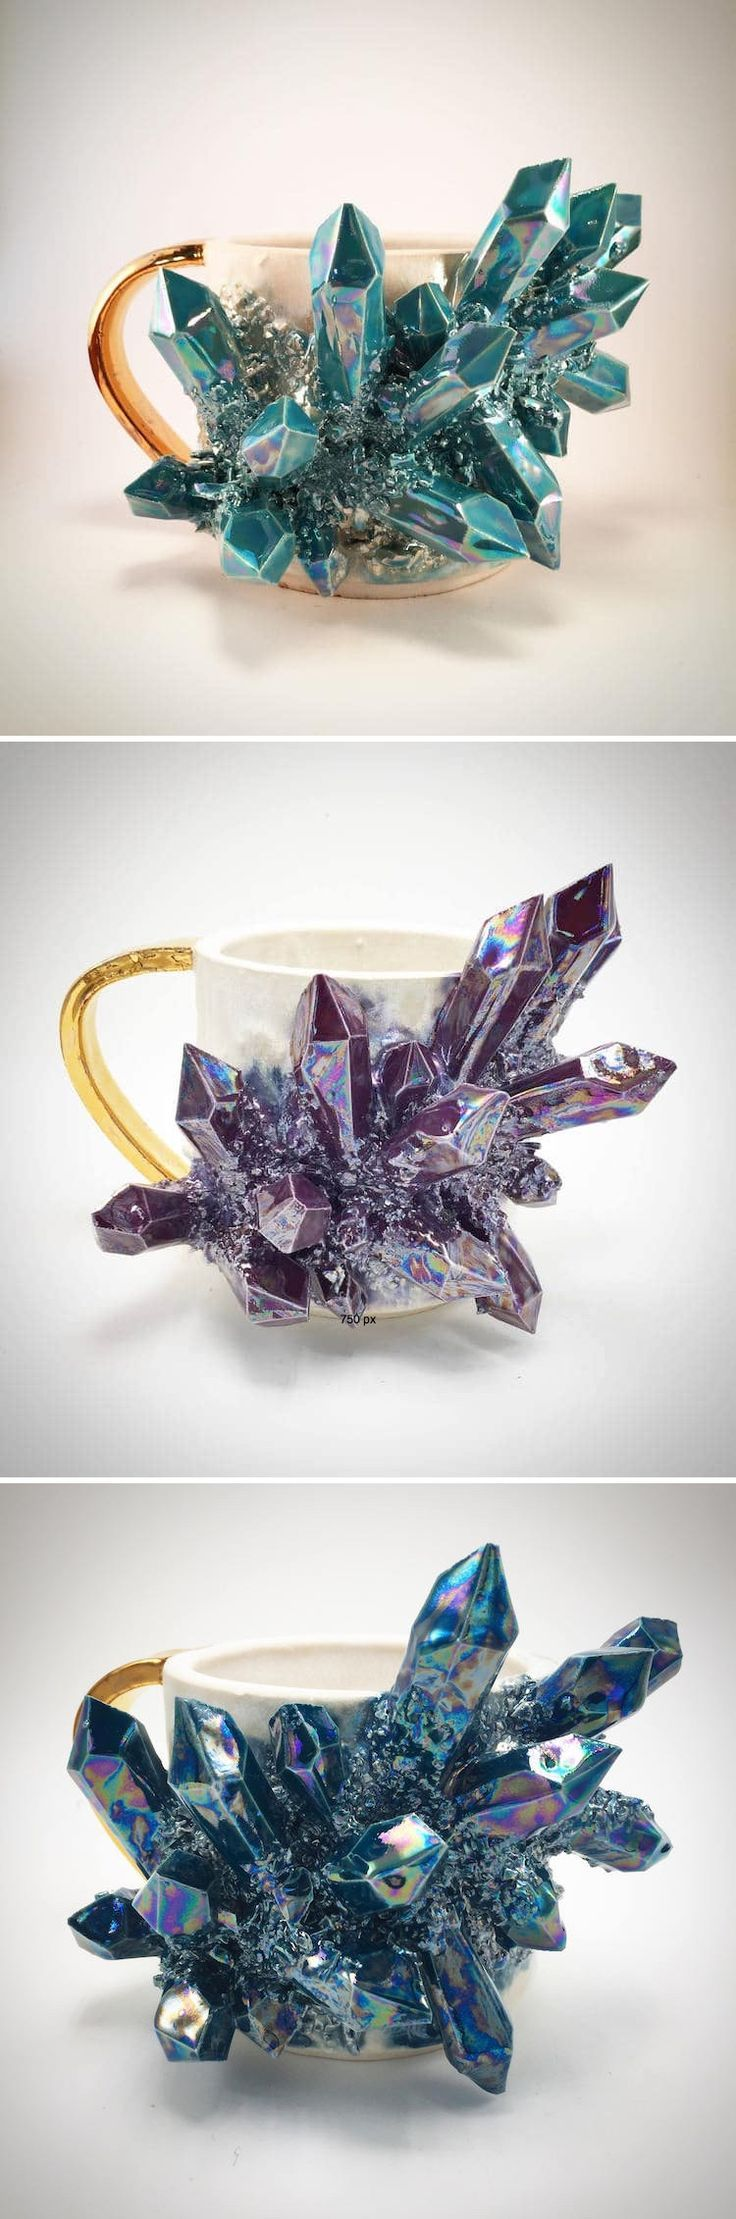 Collin Lynch of Essarai Ceramics crafts custom ceramic mugs, plates, and bowls that look like they're bursting with colorful crystals.